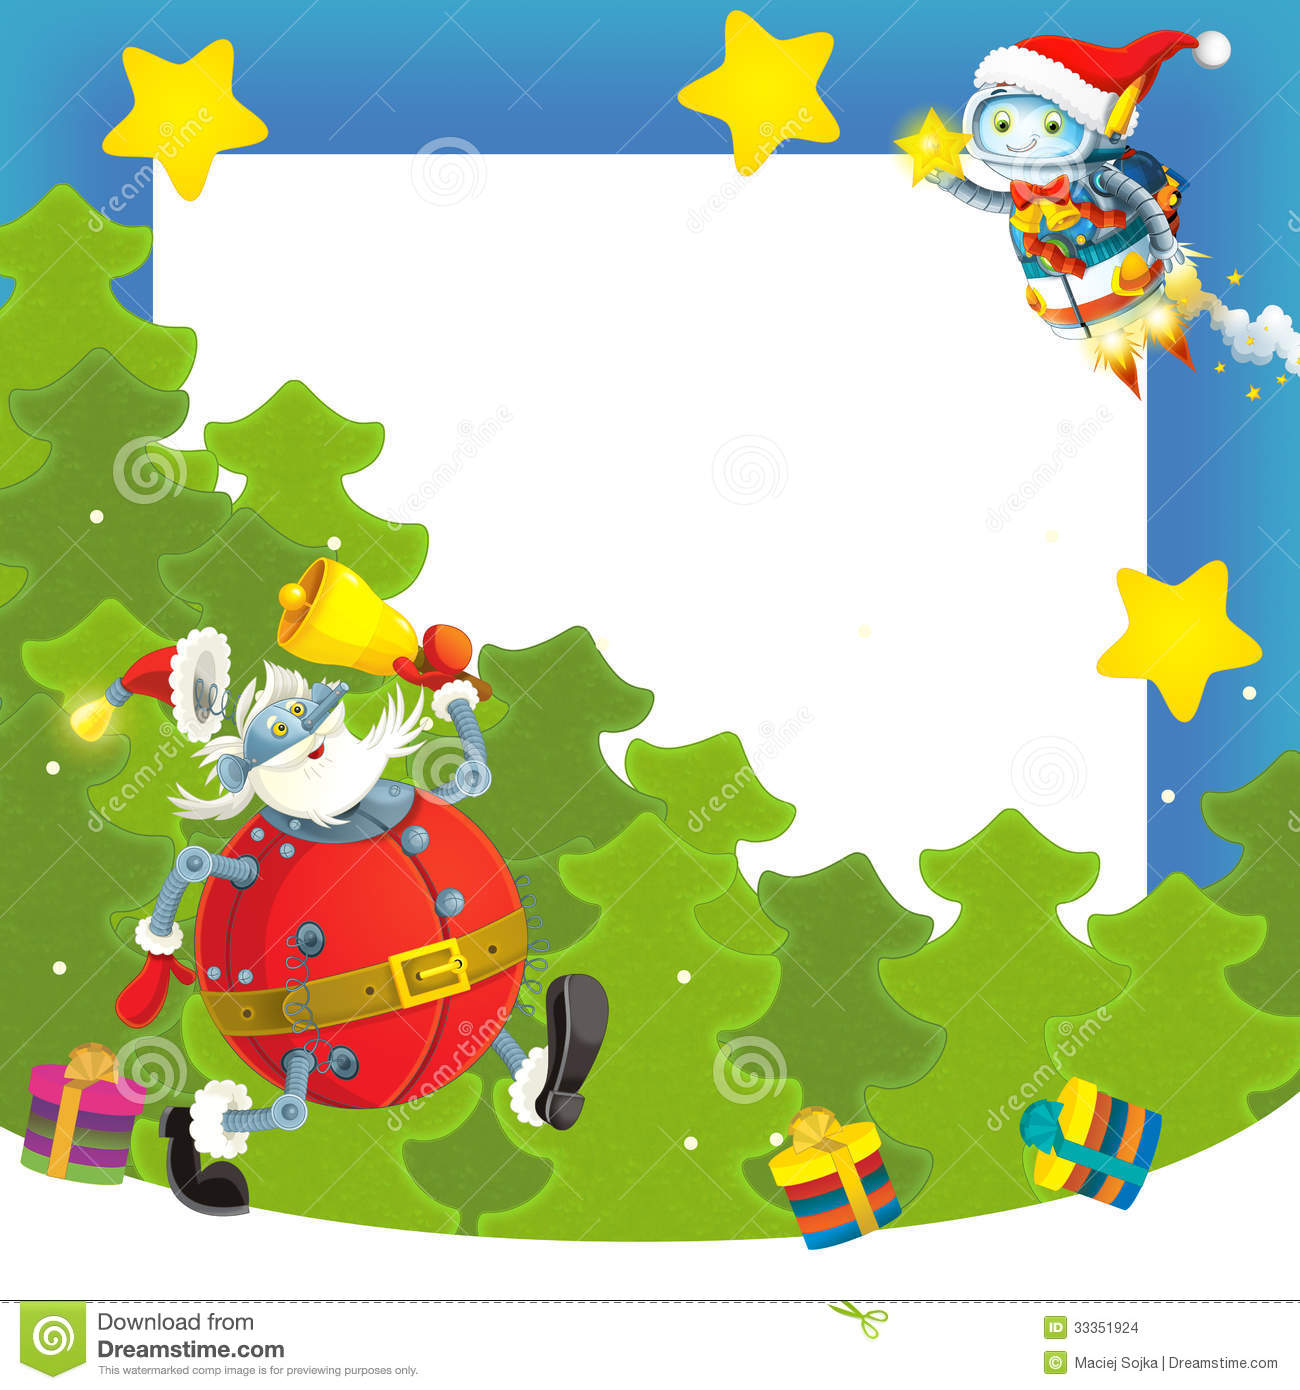 Colorful Christmas Background For Kids.Cartoon Christmas Border Illustration For The Children